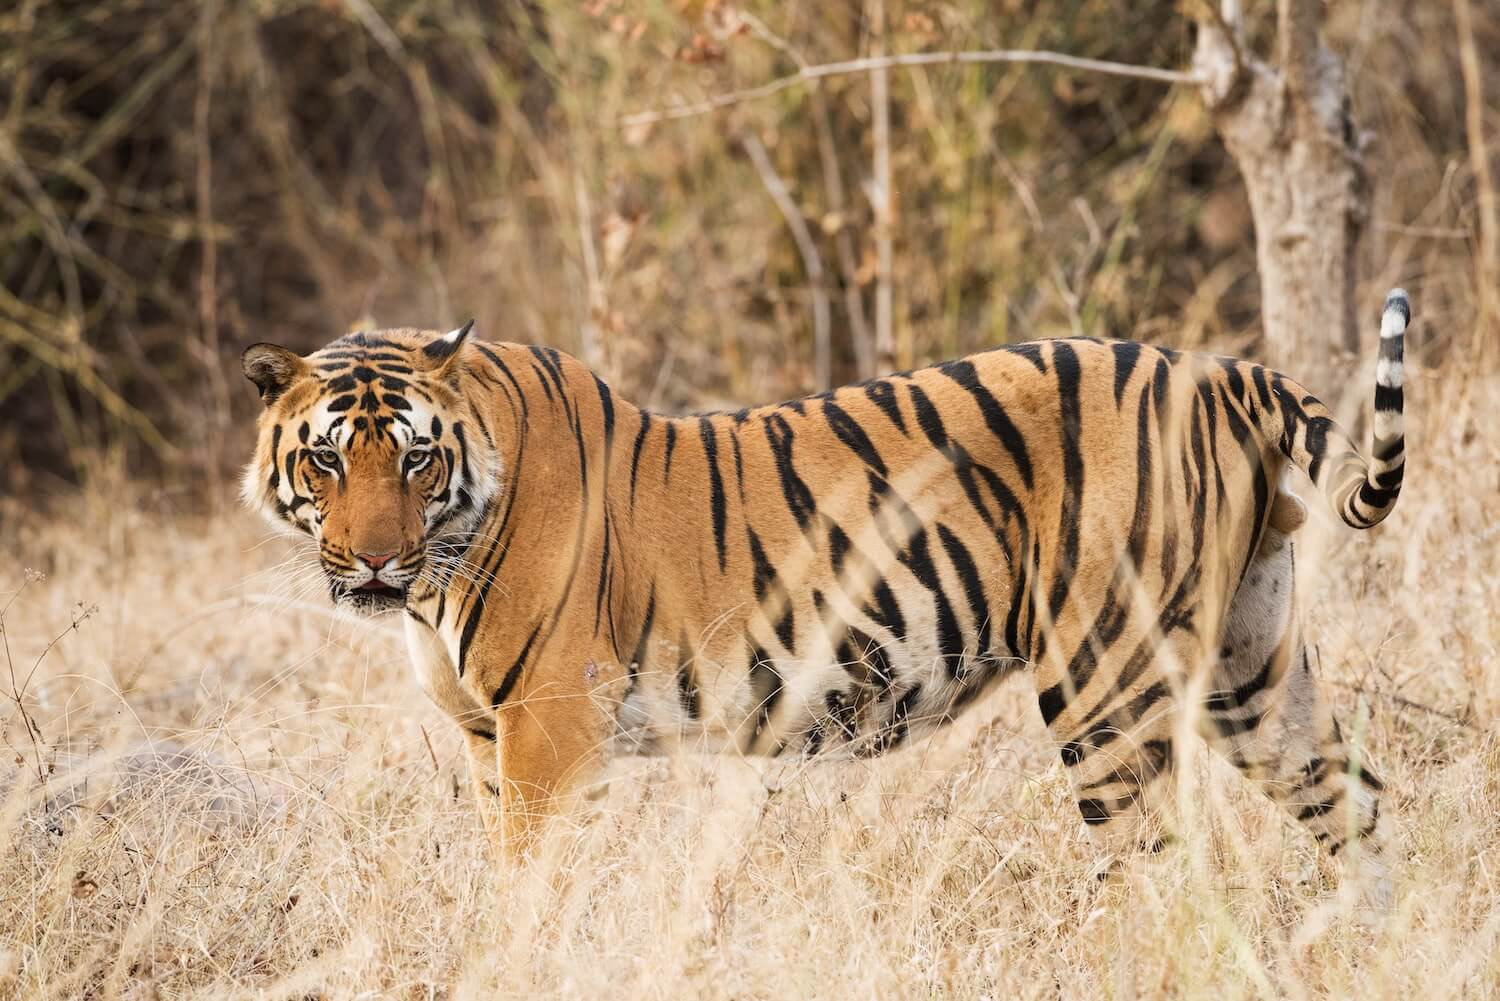 Tiger in Southern India